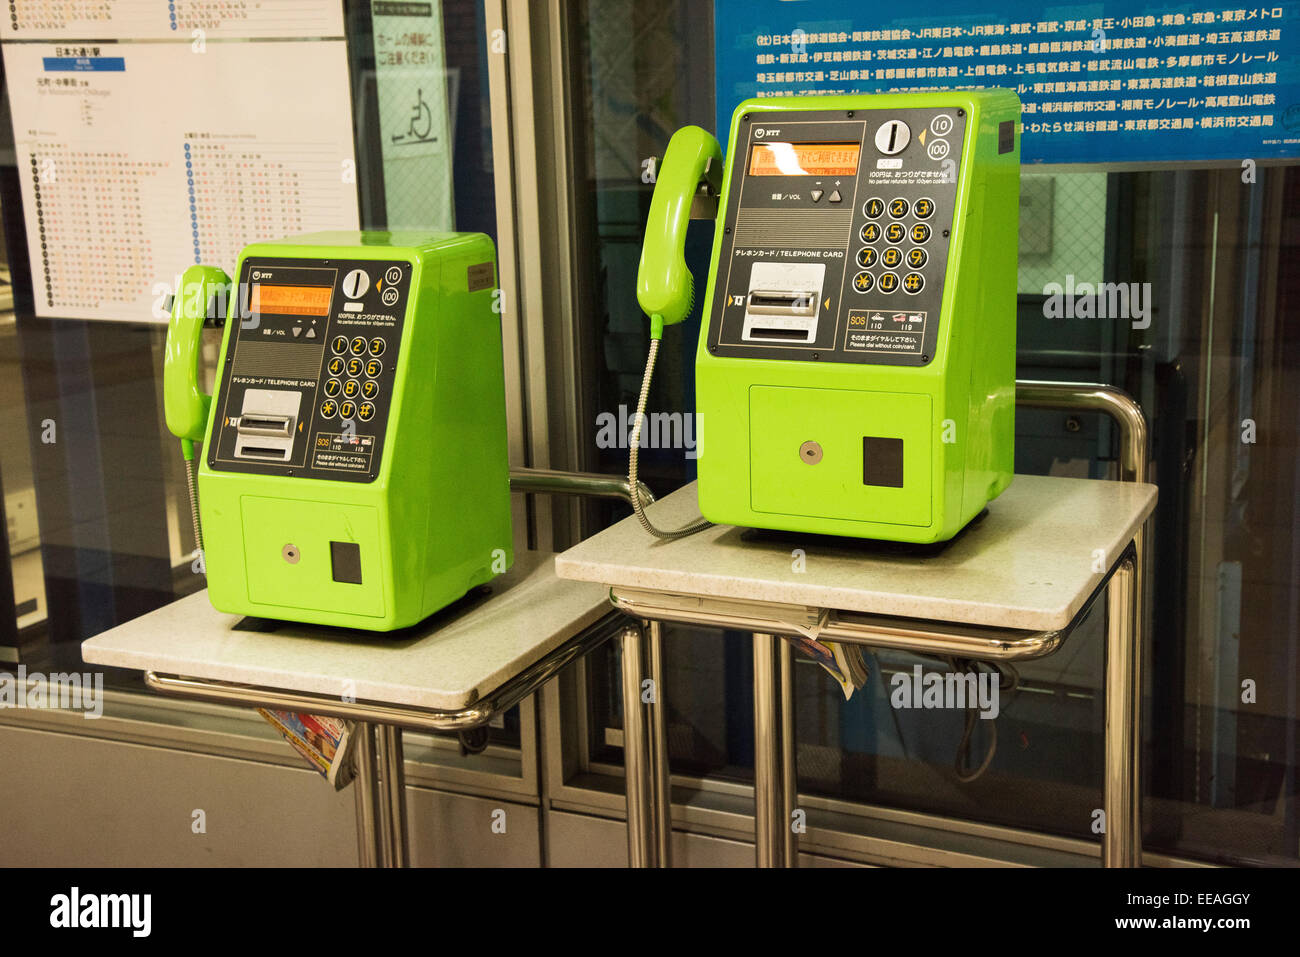 Public telephone,Nihon-odori Station,Yokohama city,Kanagawa,Japan - Stock Image